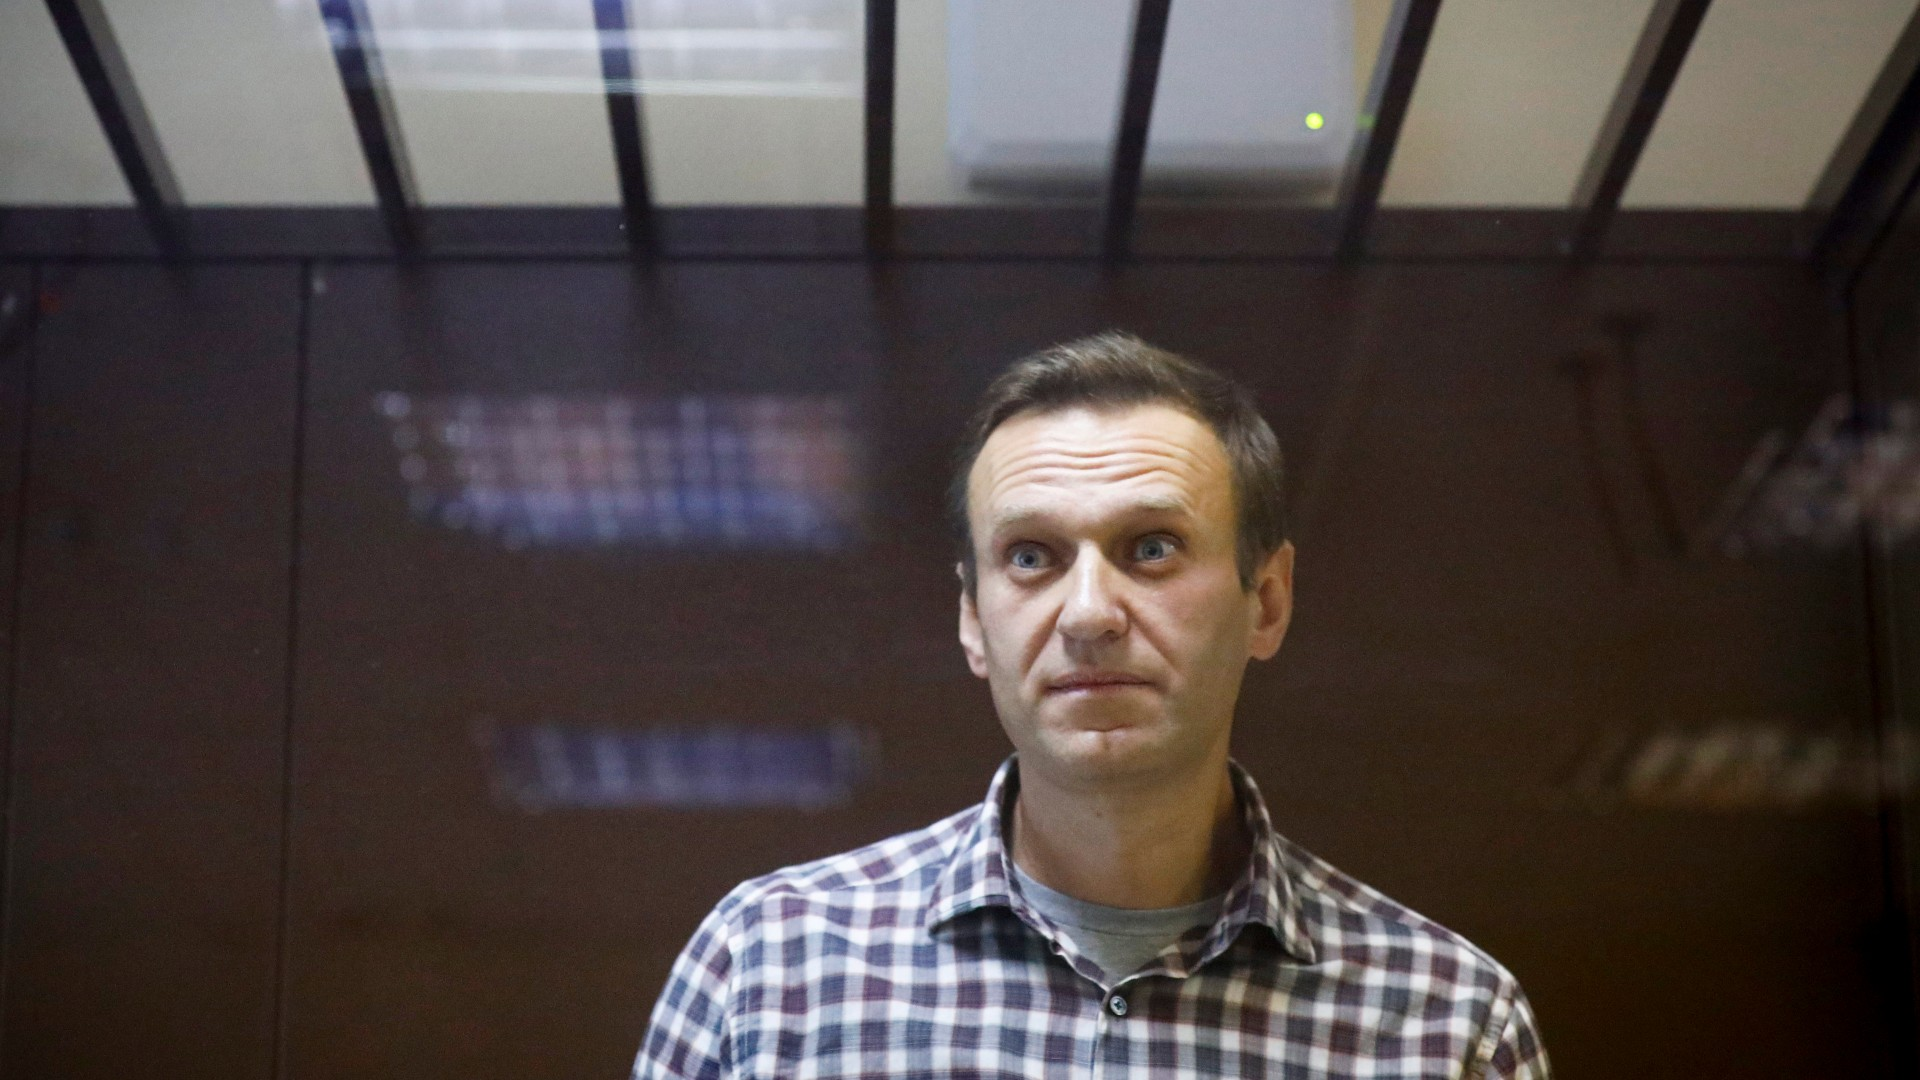 In this Feb. 20, 2021, file photo, Russian opposition leader Alexei Navalny stands in a cage in the Babuskinsky District Court in Moscow, Russia. (AP Photo/Alexander Zemlianichenko, File)